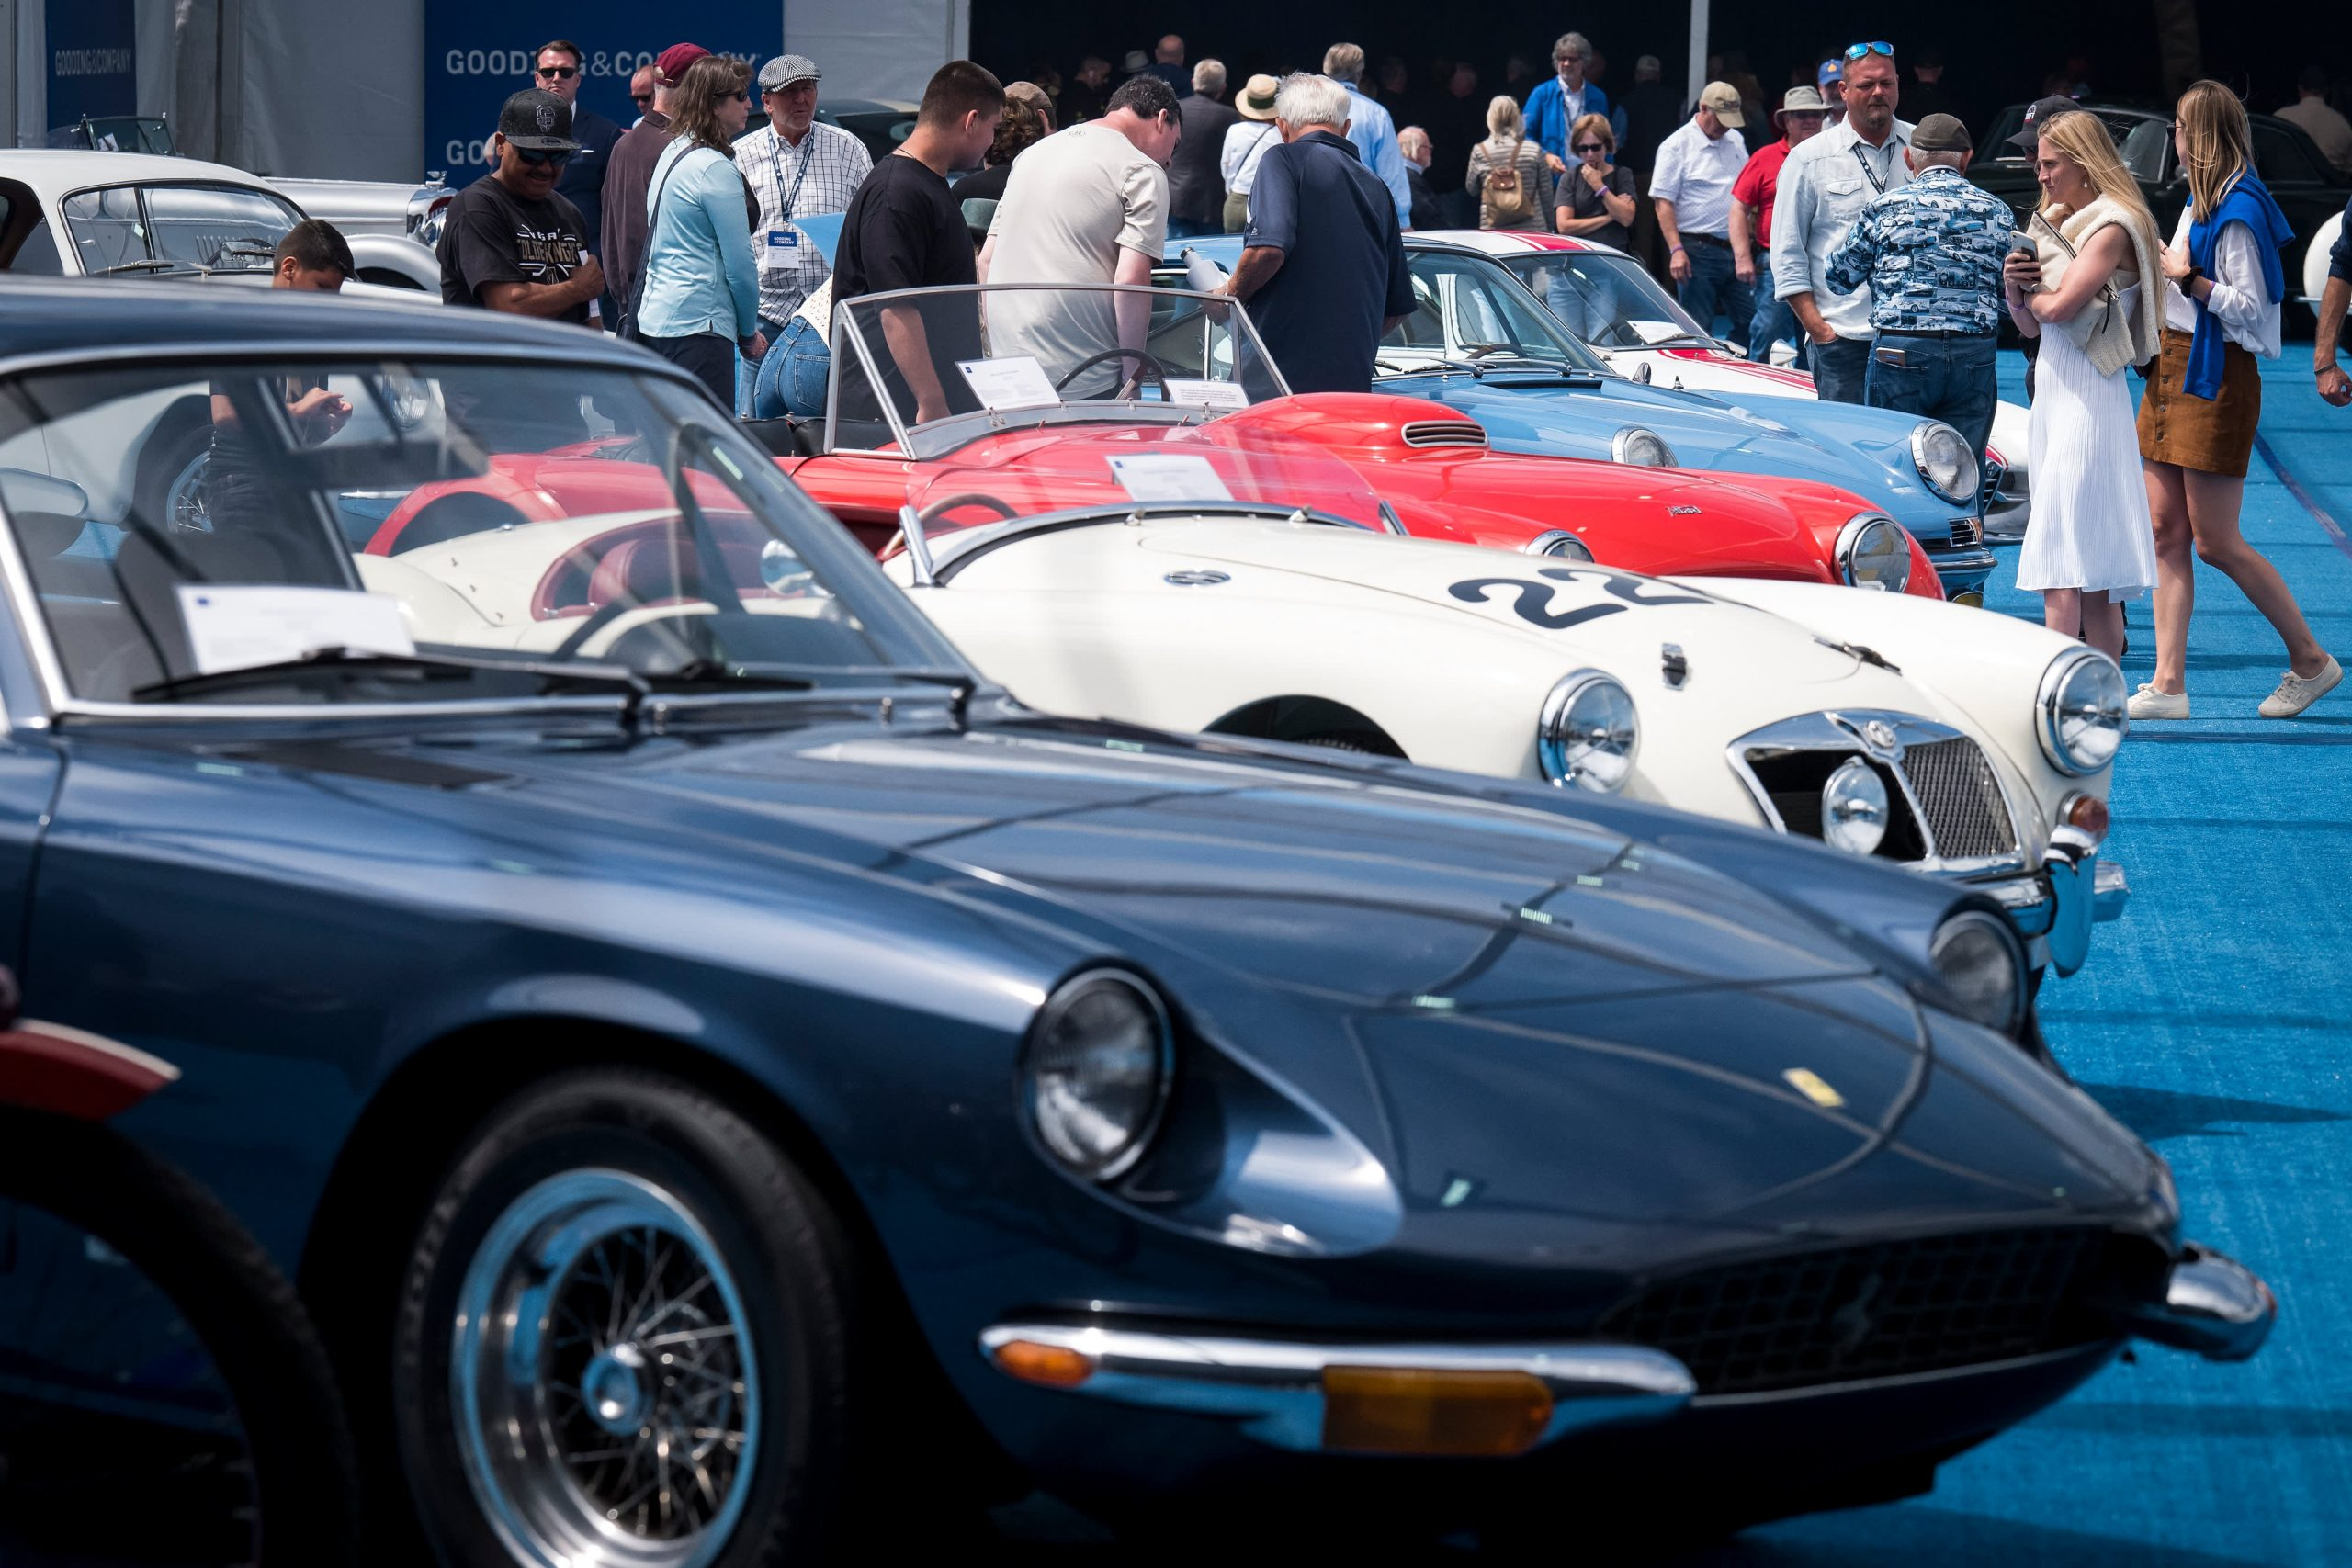 Classic car insurer Hagerty to go public via SPAC in $3 billion deal with Aldel Financial